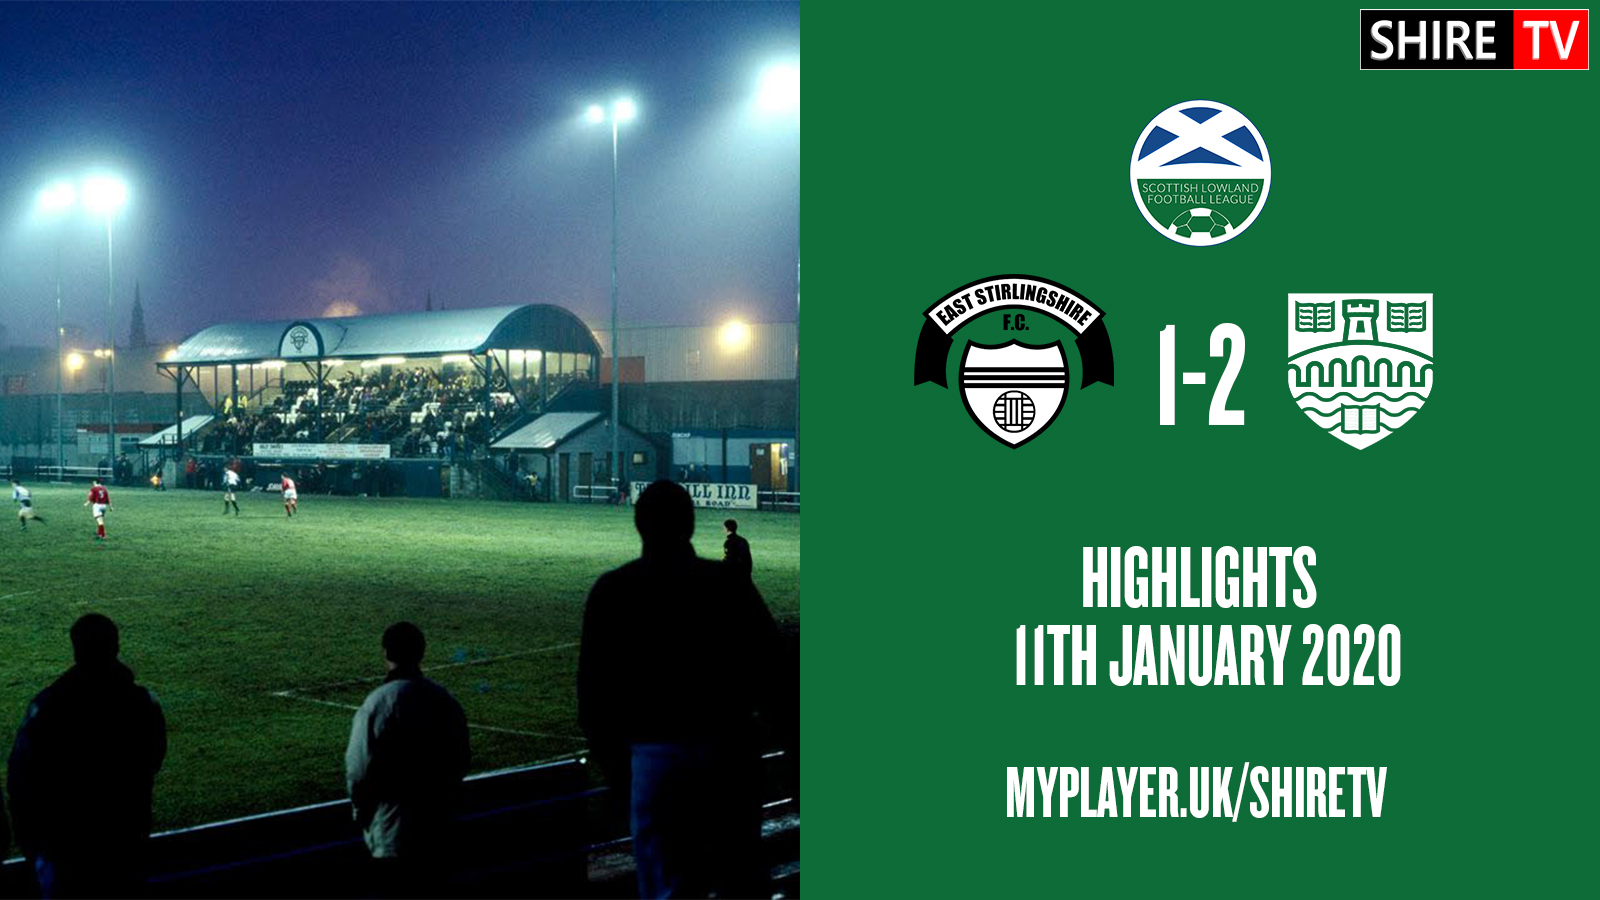 East Stirlingshire V University of Stirling (Lowland League 11th January 2020)